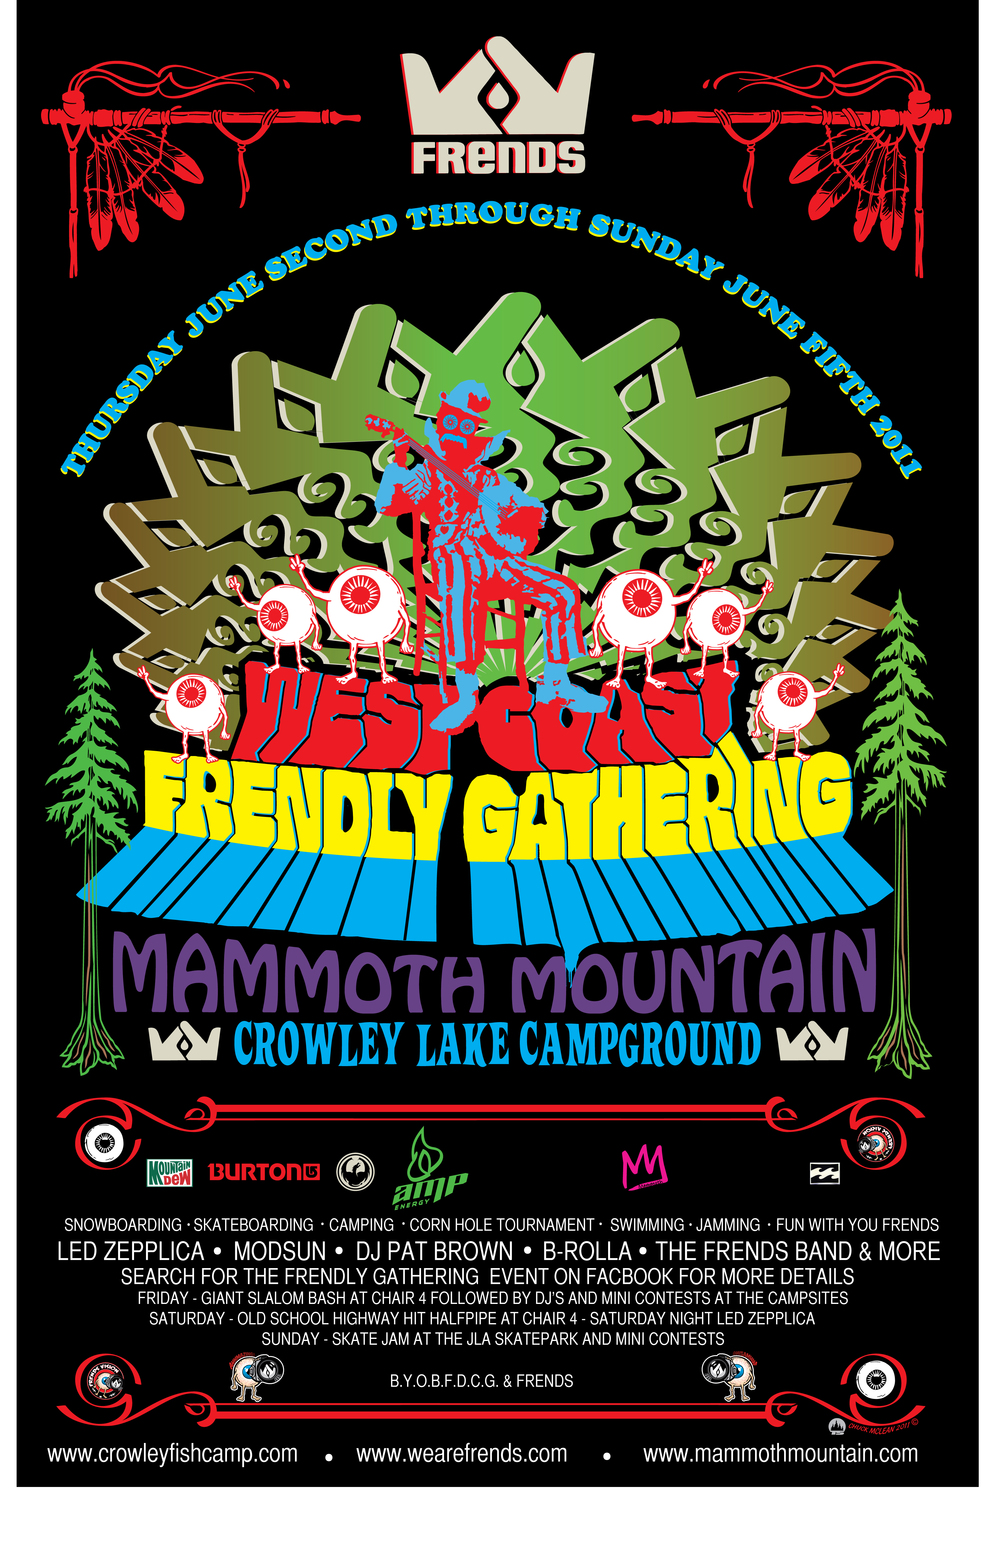 2011 West Coast Frendly Gathering Poster   Artist: Chuck McLean